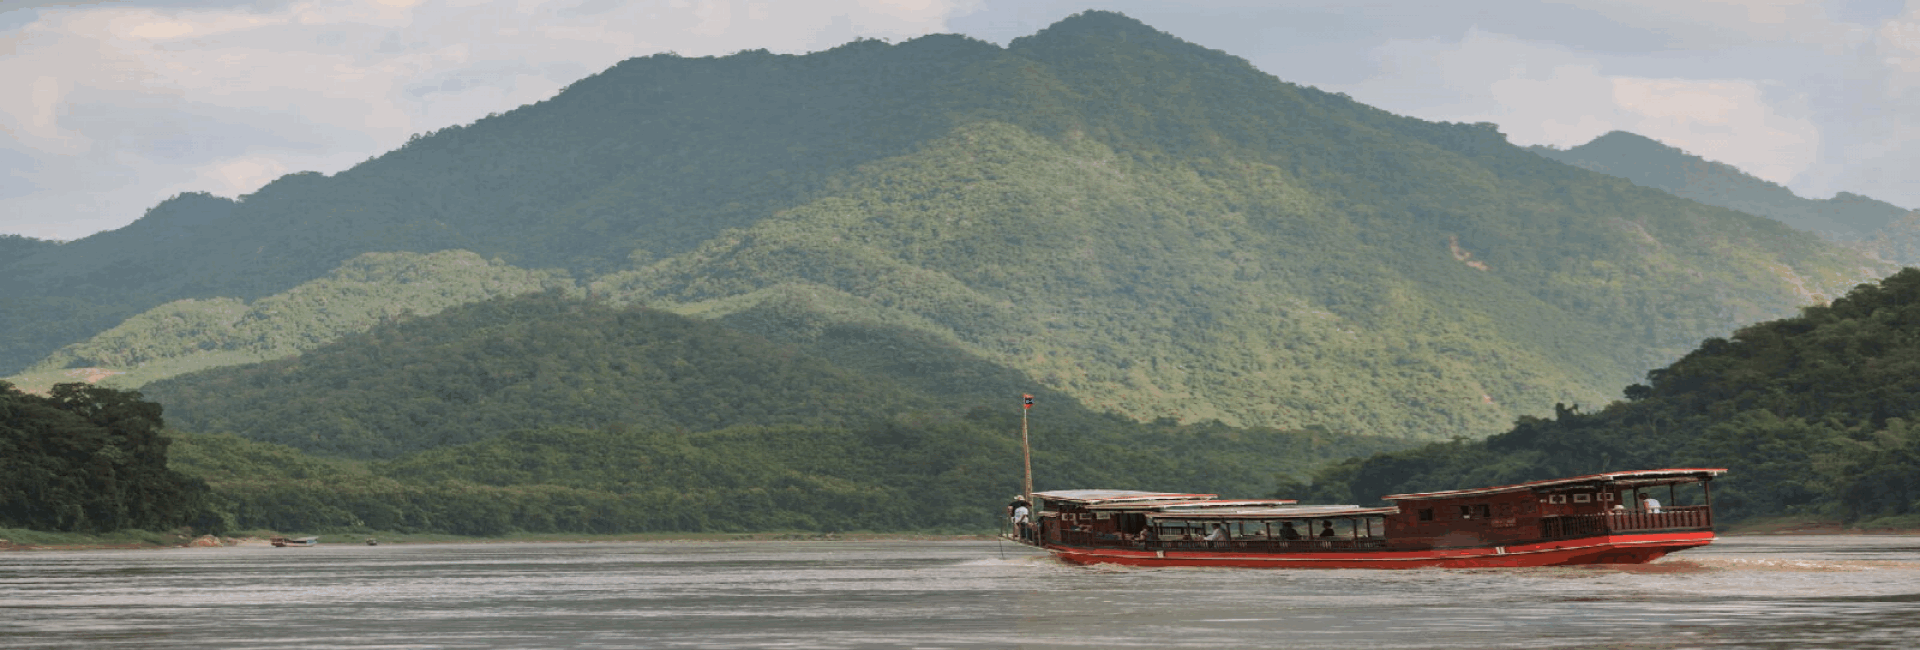 Meet the Mighty Mekong in Laos